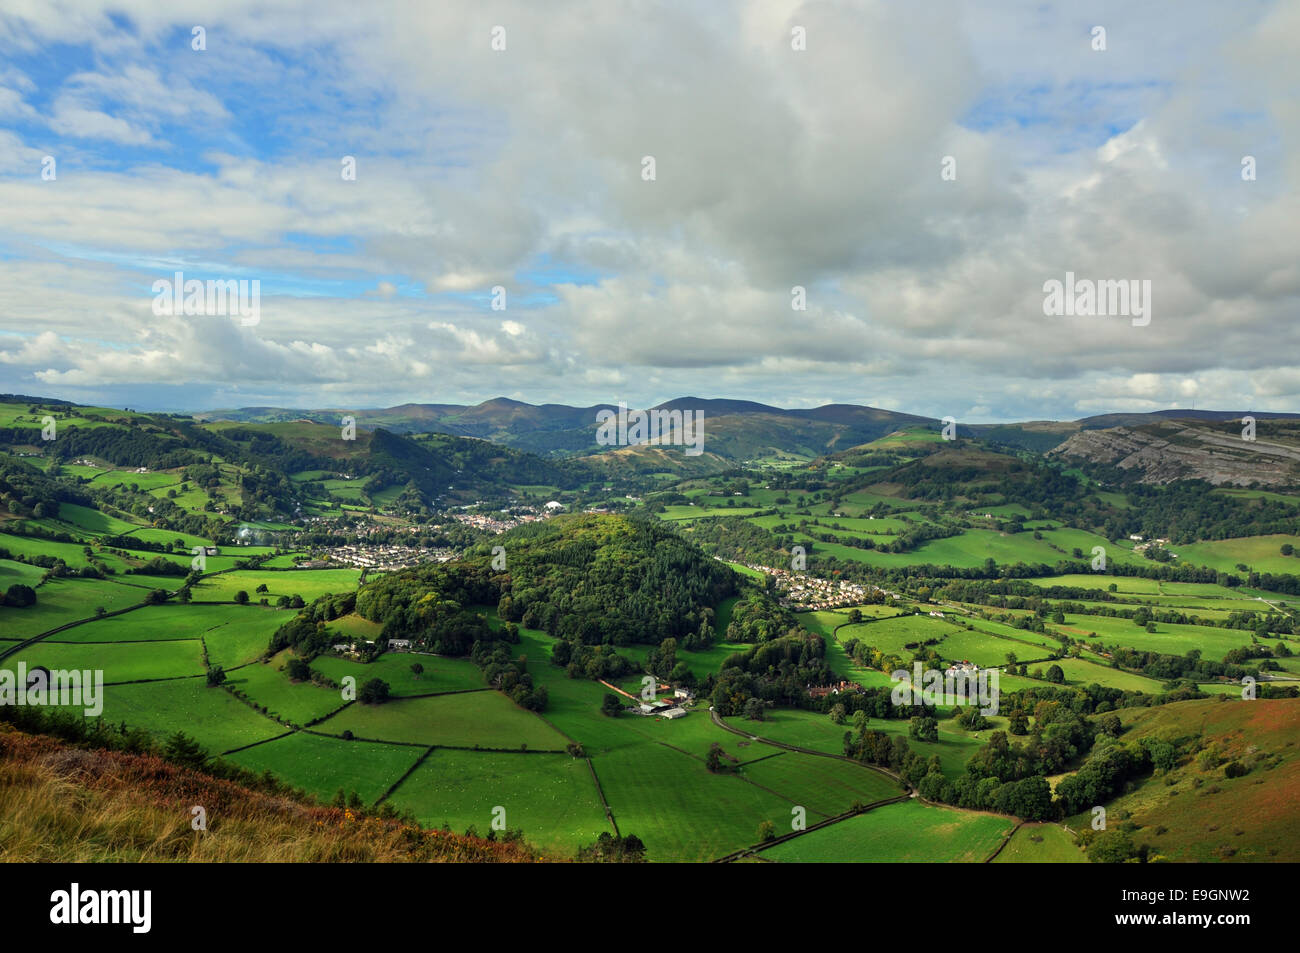 The beautiful vale of Llangollen, Dee Valley from the mountain top. Stock Photo